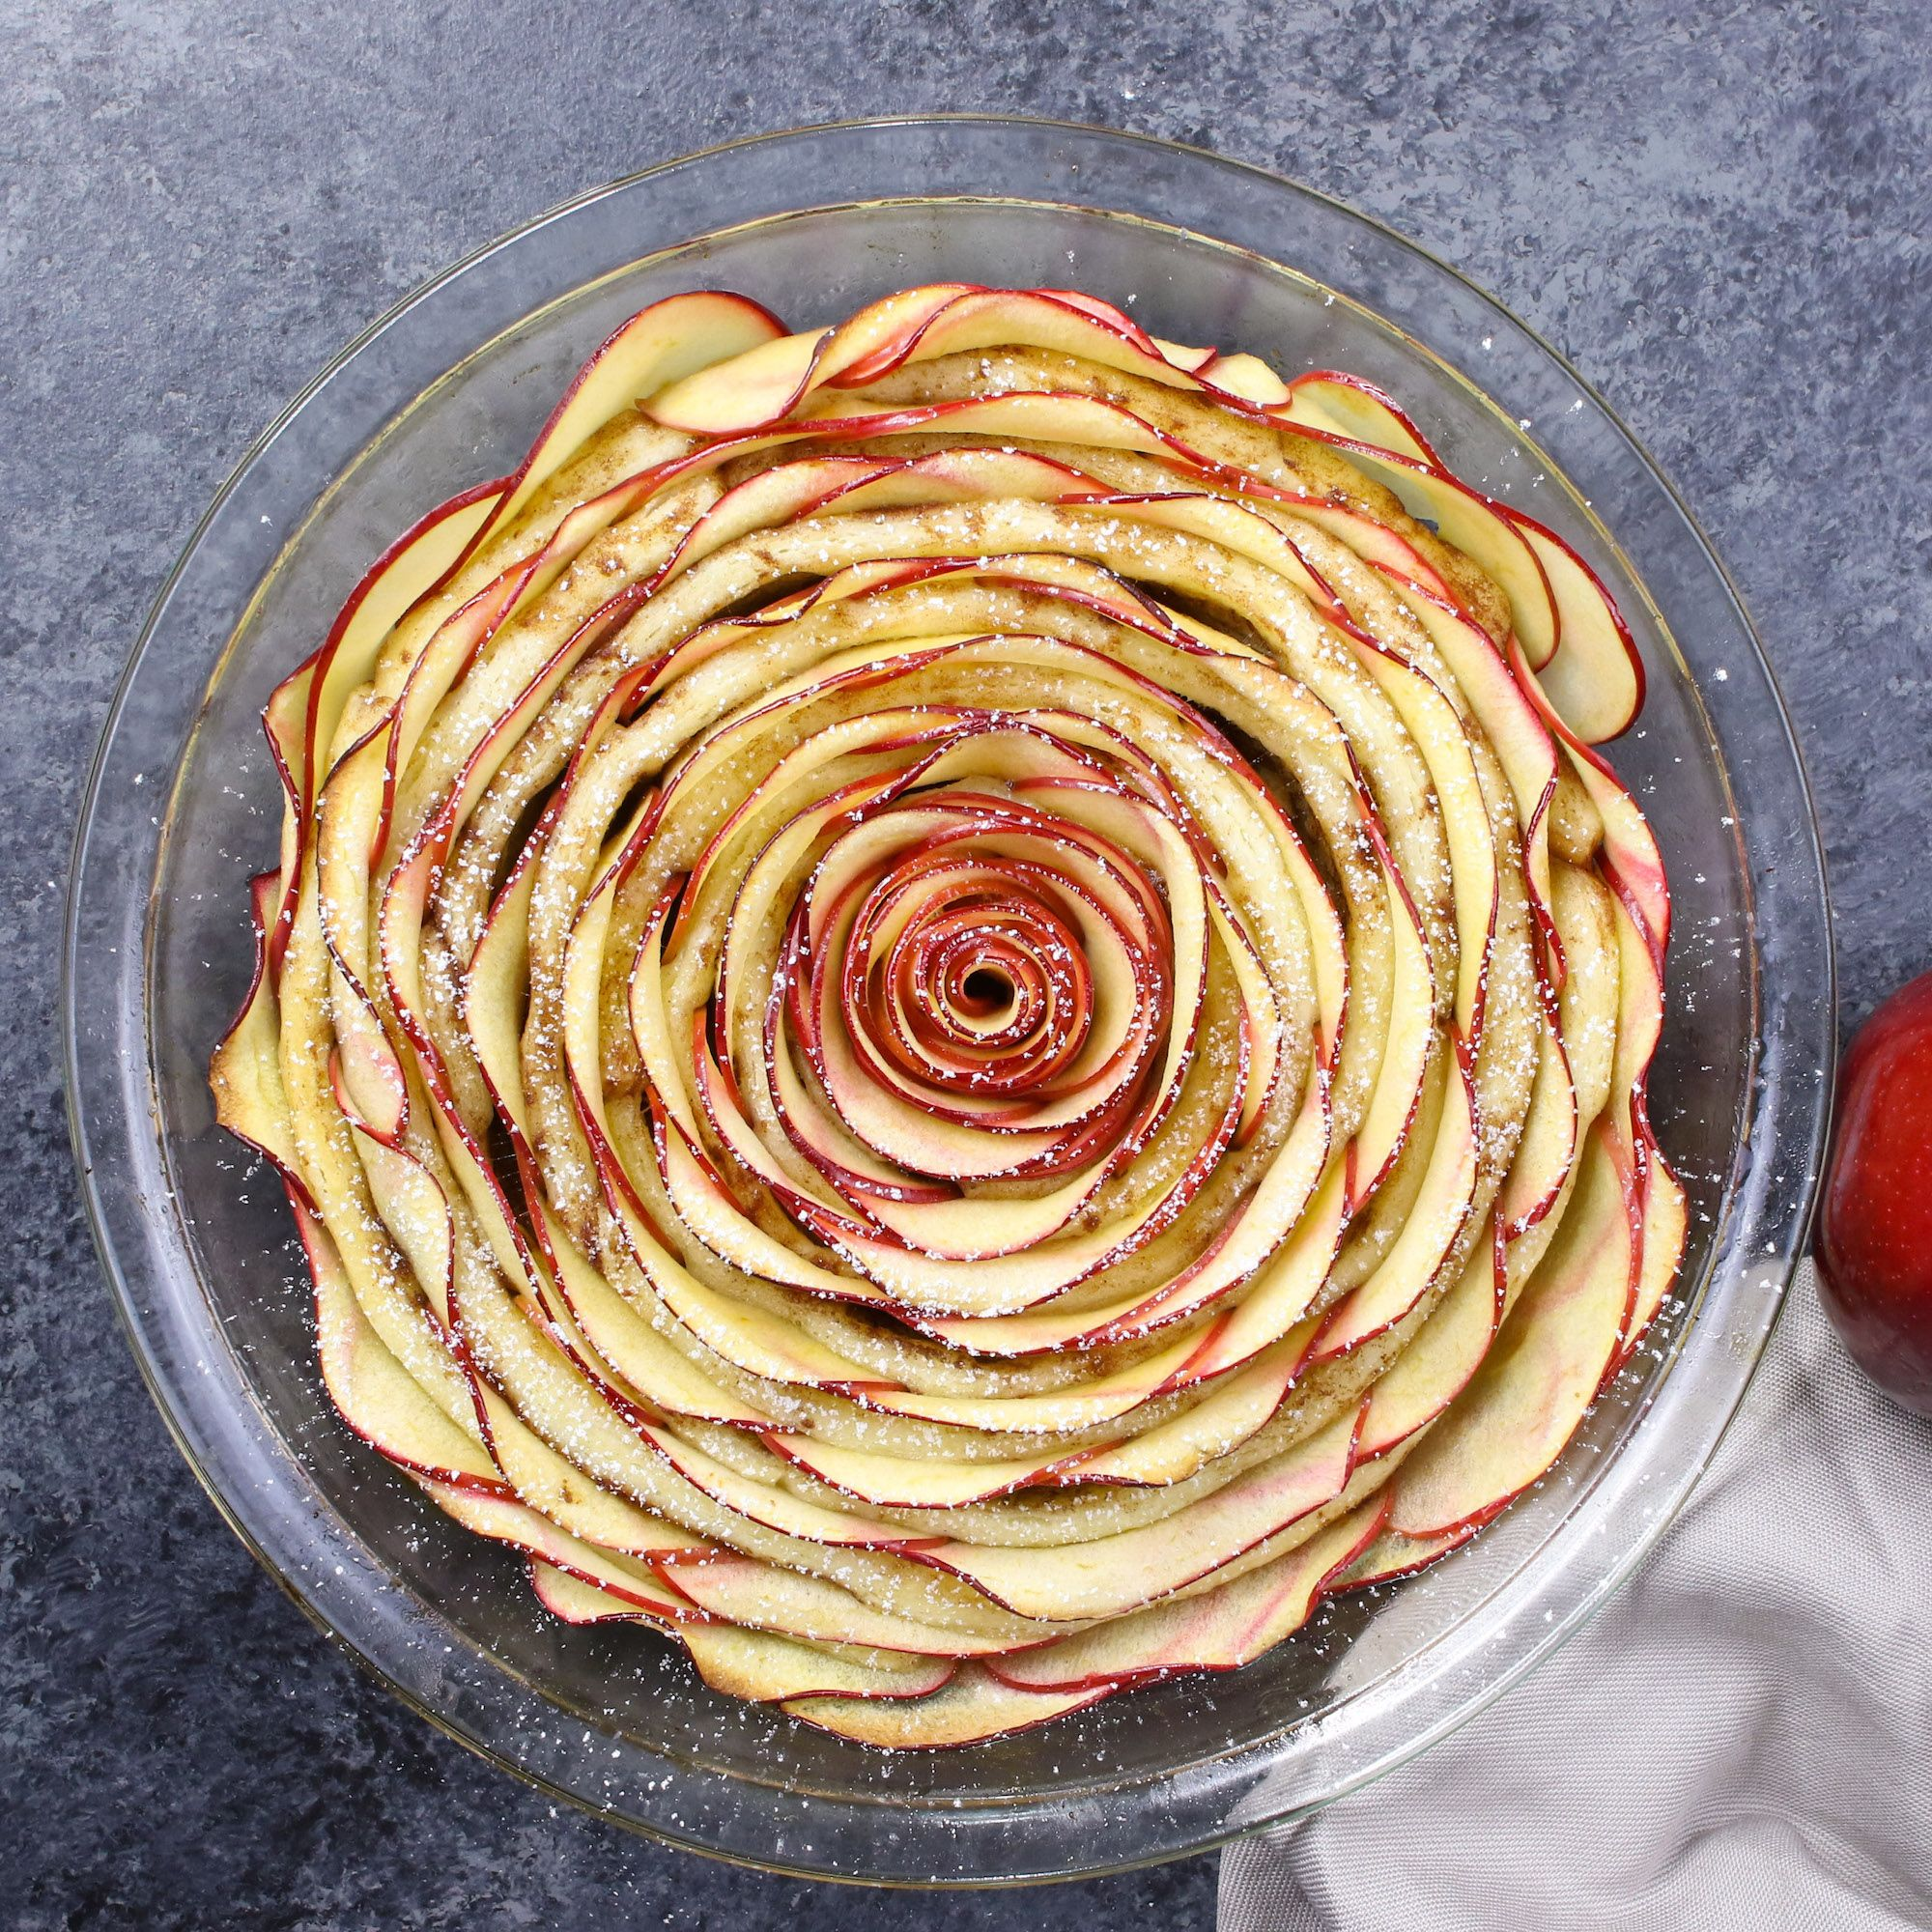 Cinnamon Roll Apple Rose Tart - Made with fresh apples. All you need is only 5 simple ingredients: cinnamon roll dough, red apples, lemon juice, brown sugar and butter. So beautiful! Quick and easy recipe. #applerecipes